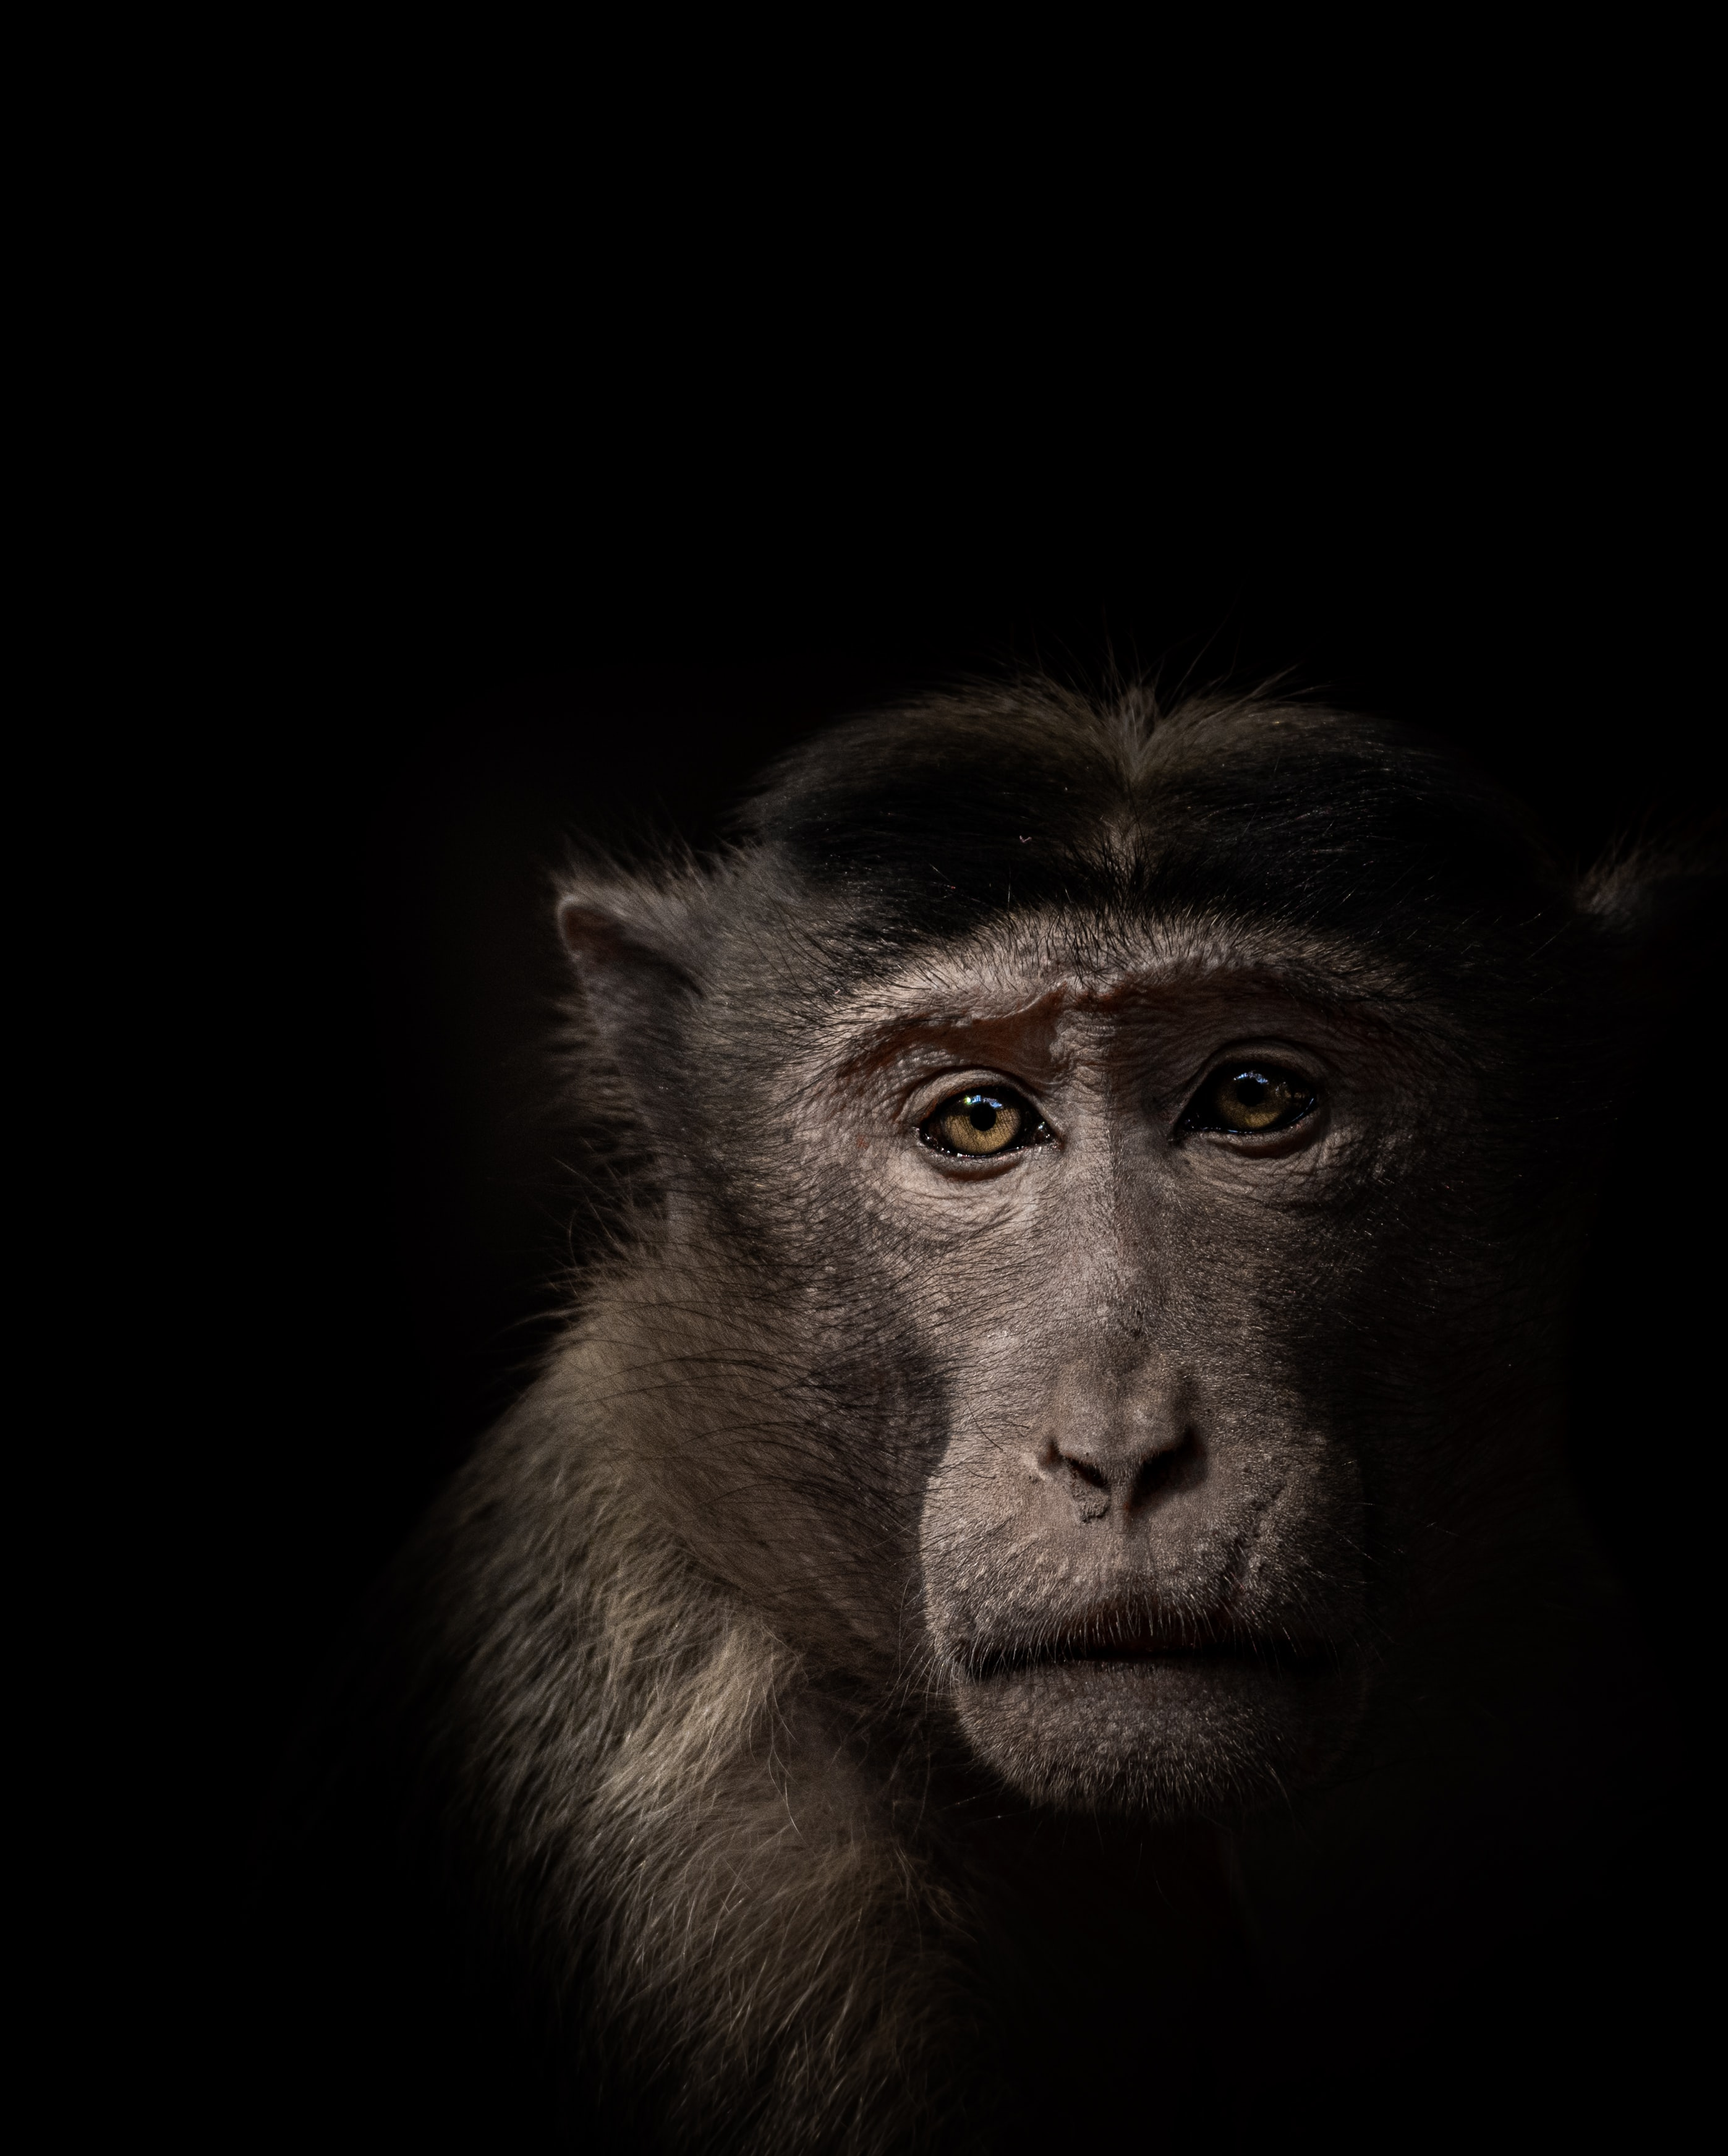 104487 download wallpaper Animals, Monkey, Muzzle, Animal screensavers and pictures for free